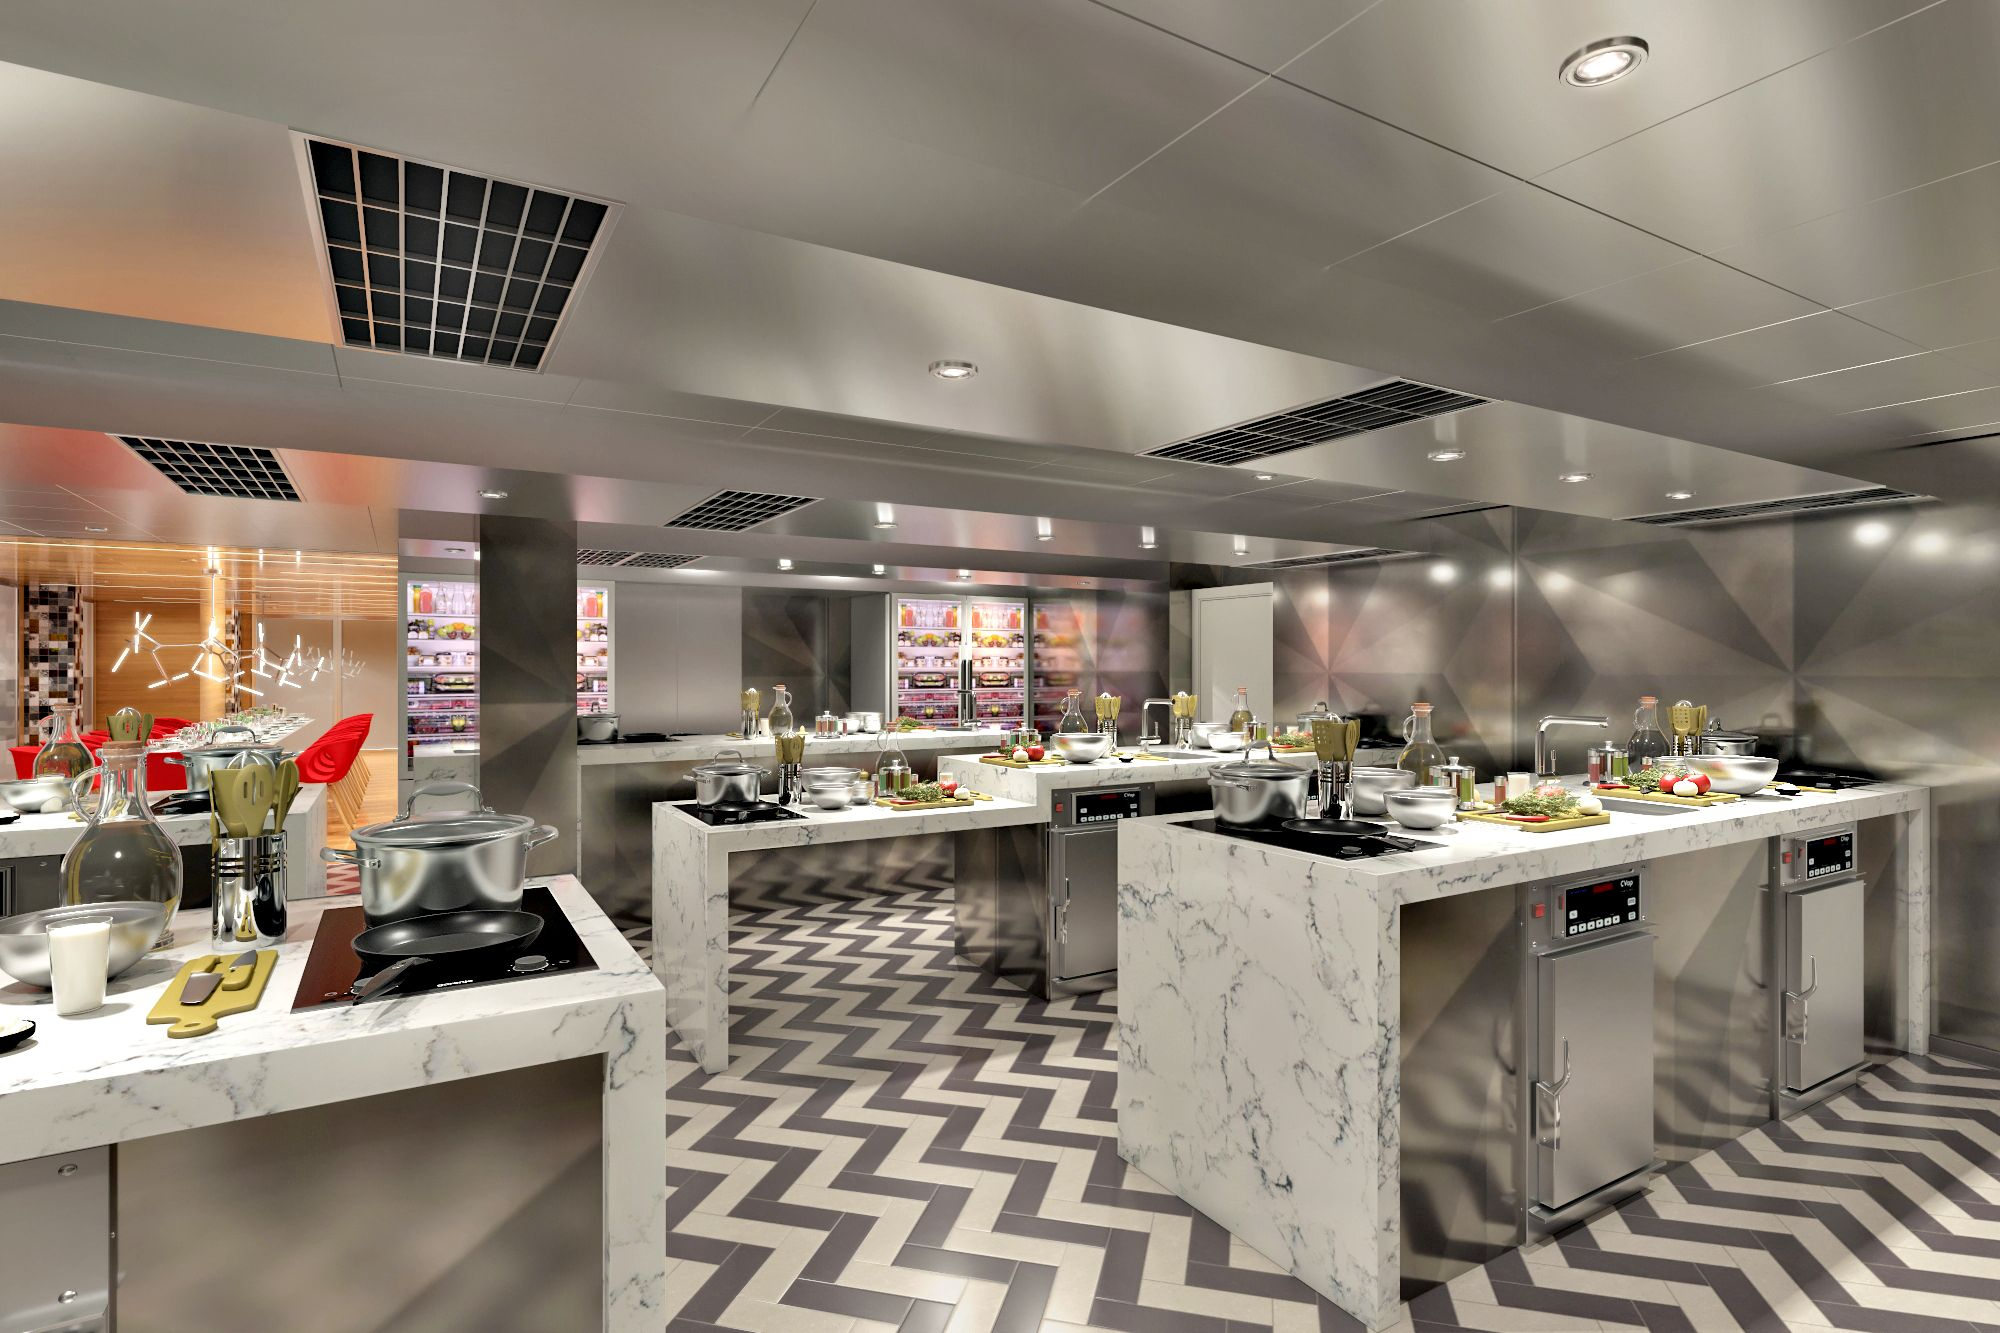 Carnival Cruise Line's Newest Ship, The Panorama, Will Offer Cooking Classes